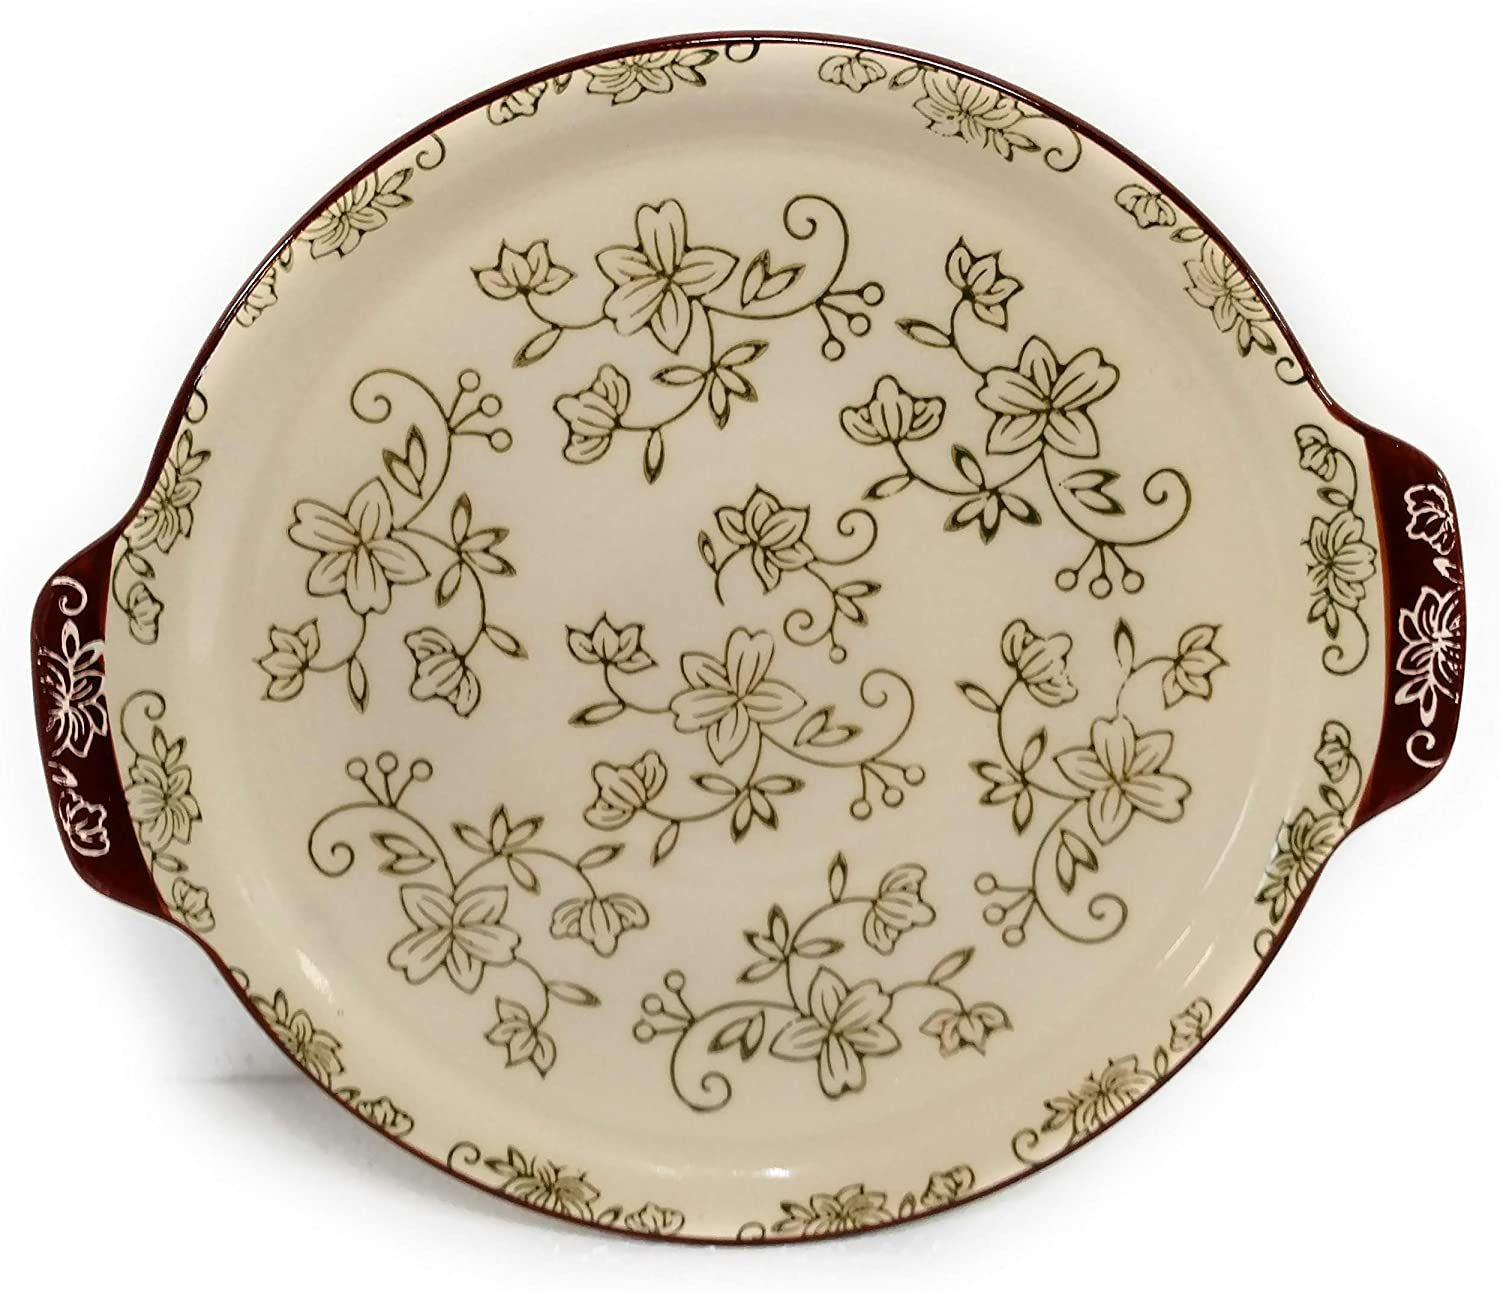 Floral Lace Lime Stoneware Temp-tations Cheese Ball /& Cracker Tray